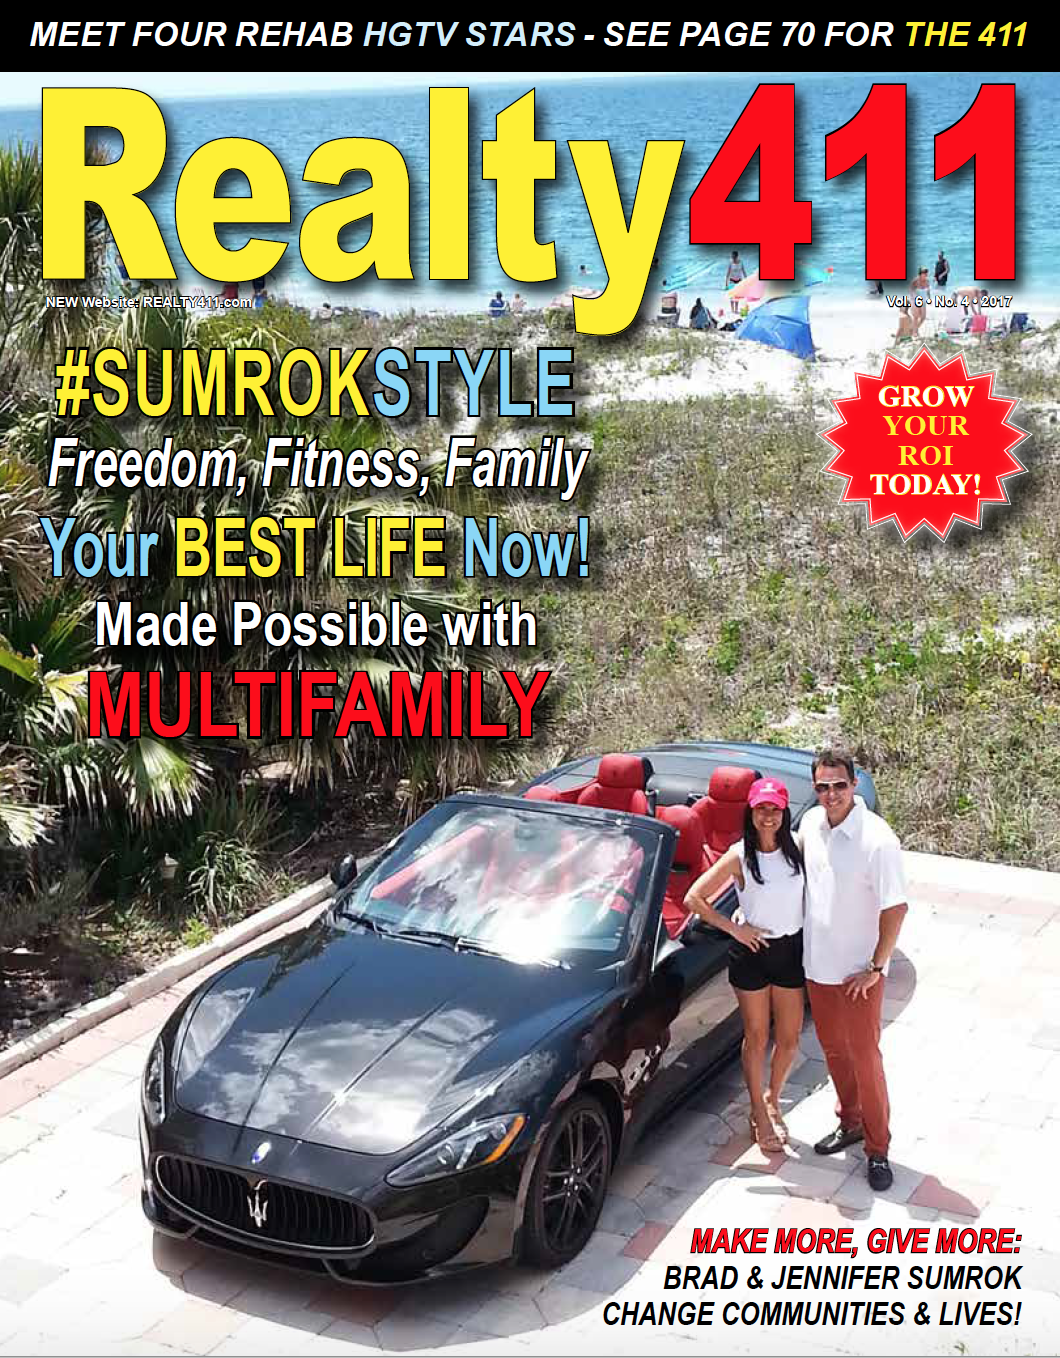 Sumrok Realty 411 Cover